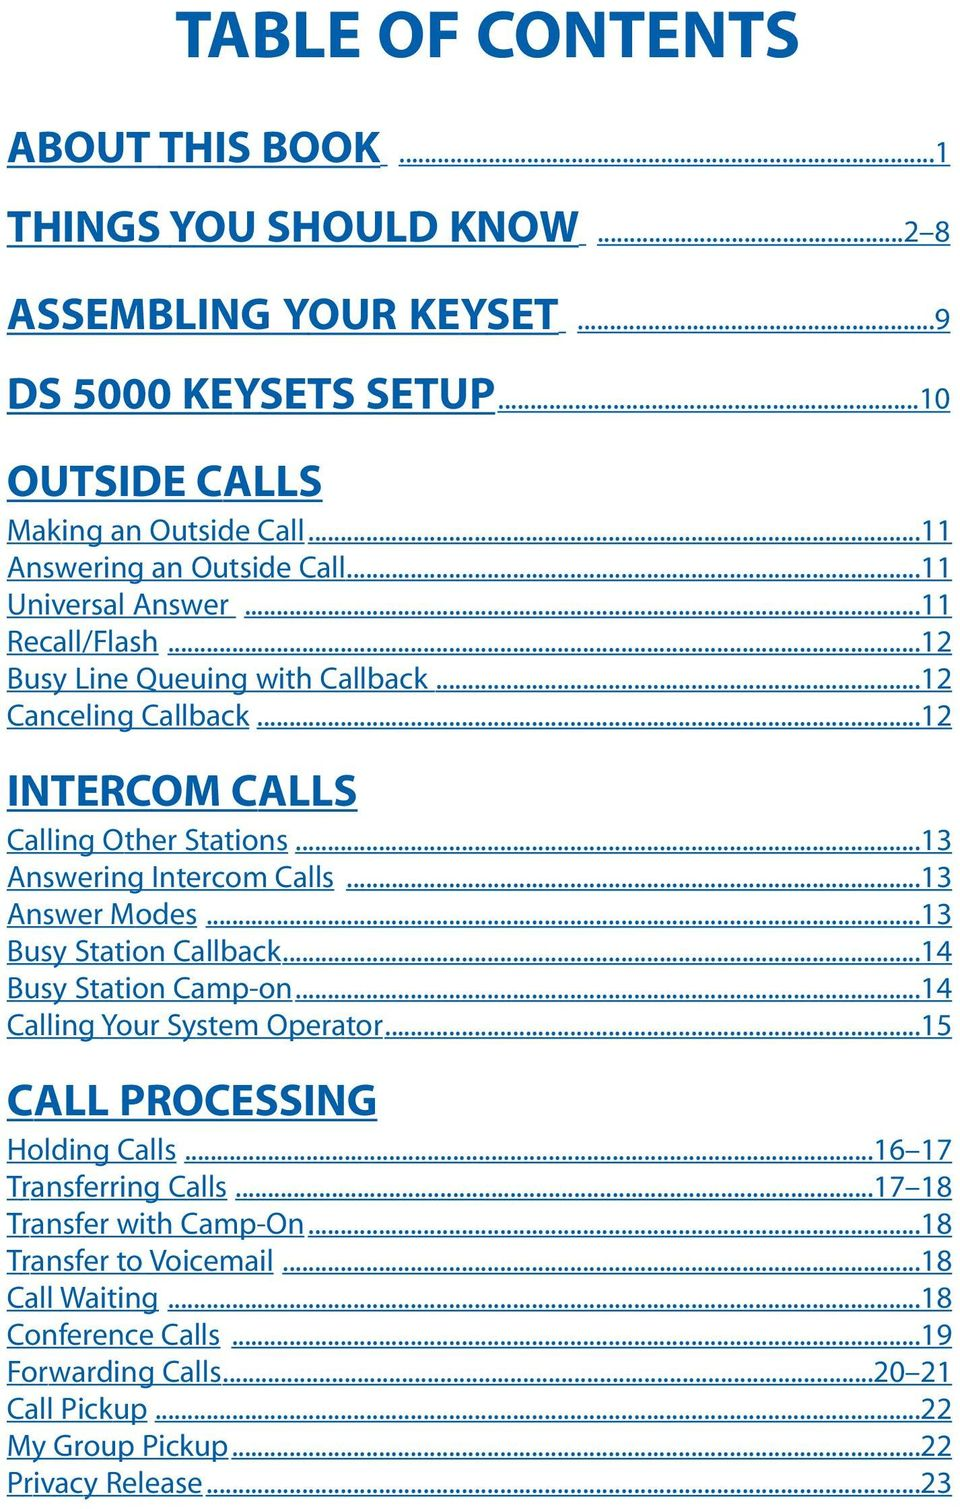 ..13 Answering Intercom Calls...13 Answer Modes...13 Busy Station Callback...14 Busy Station Camp-on...14 Calling Your System Operator...15 CALL PROCESSING Holding Calls.